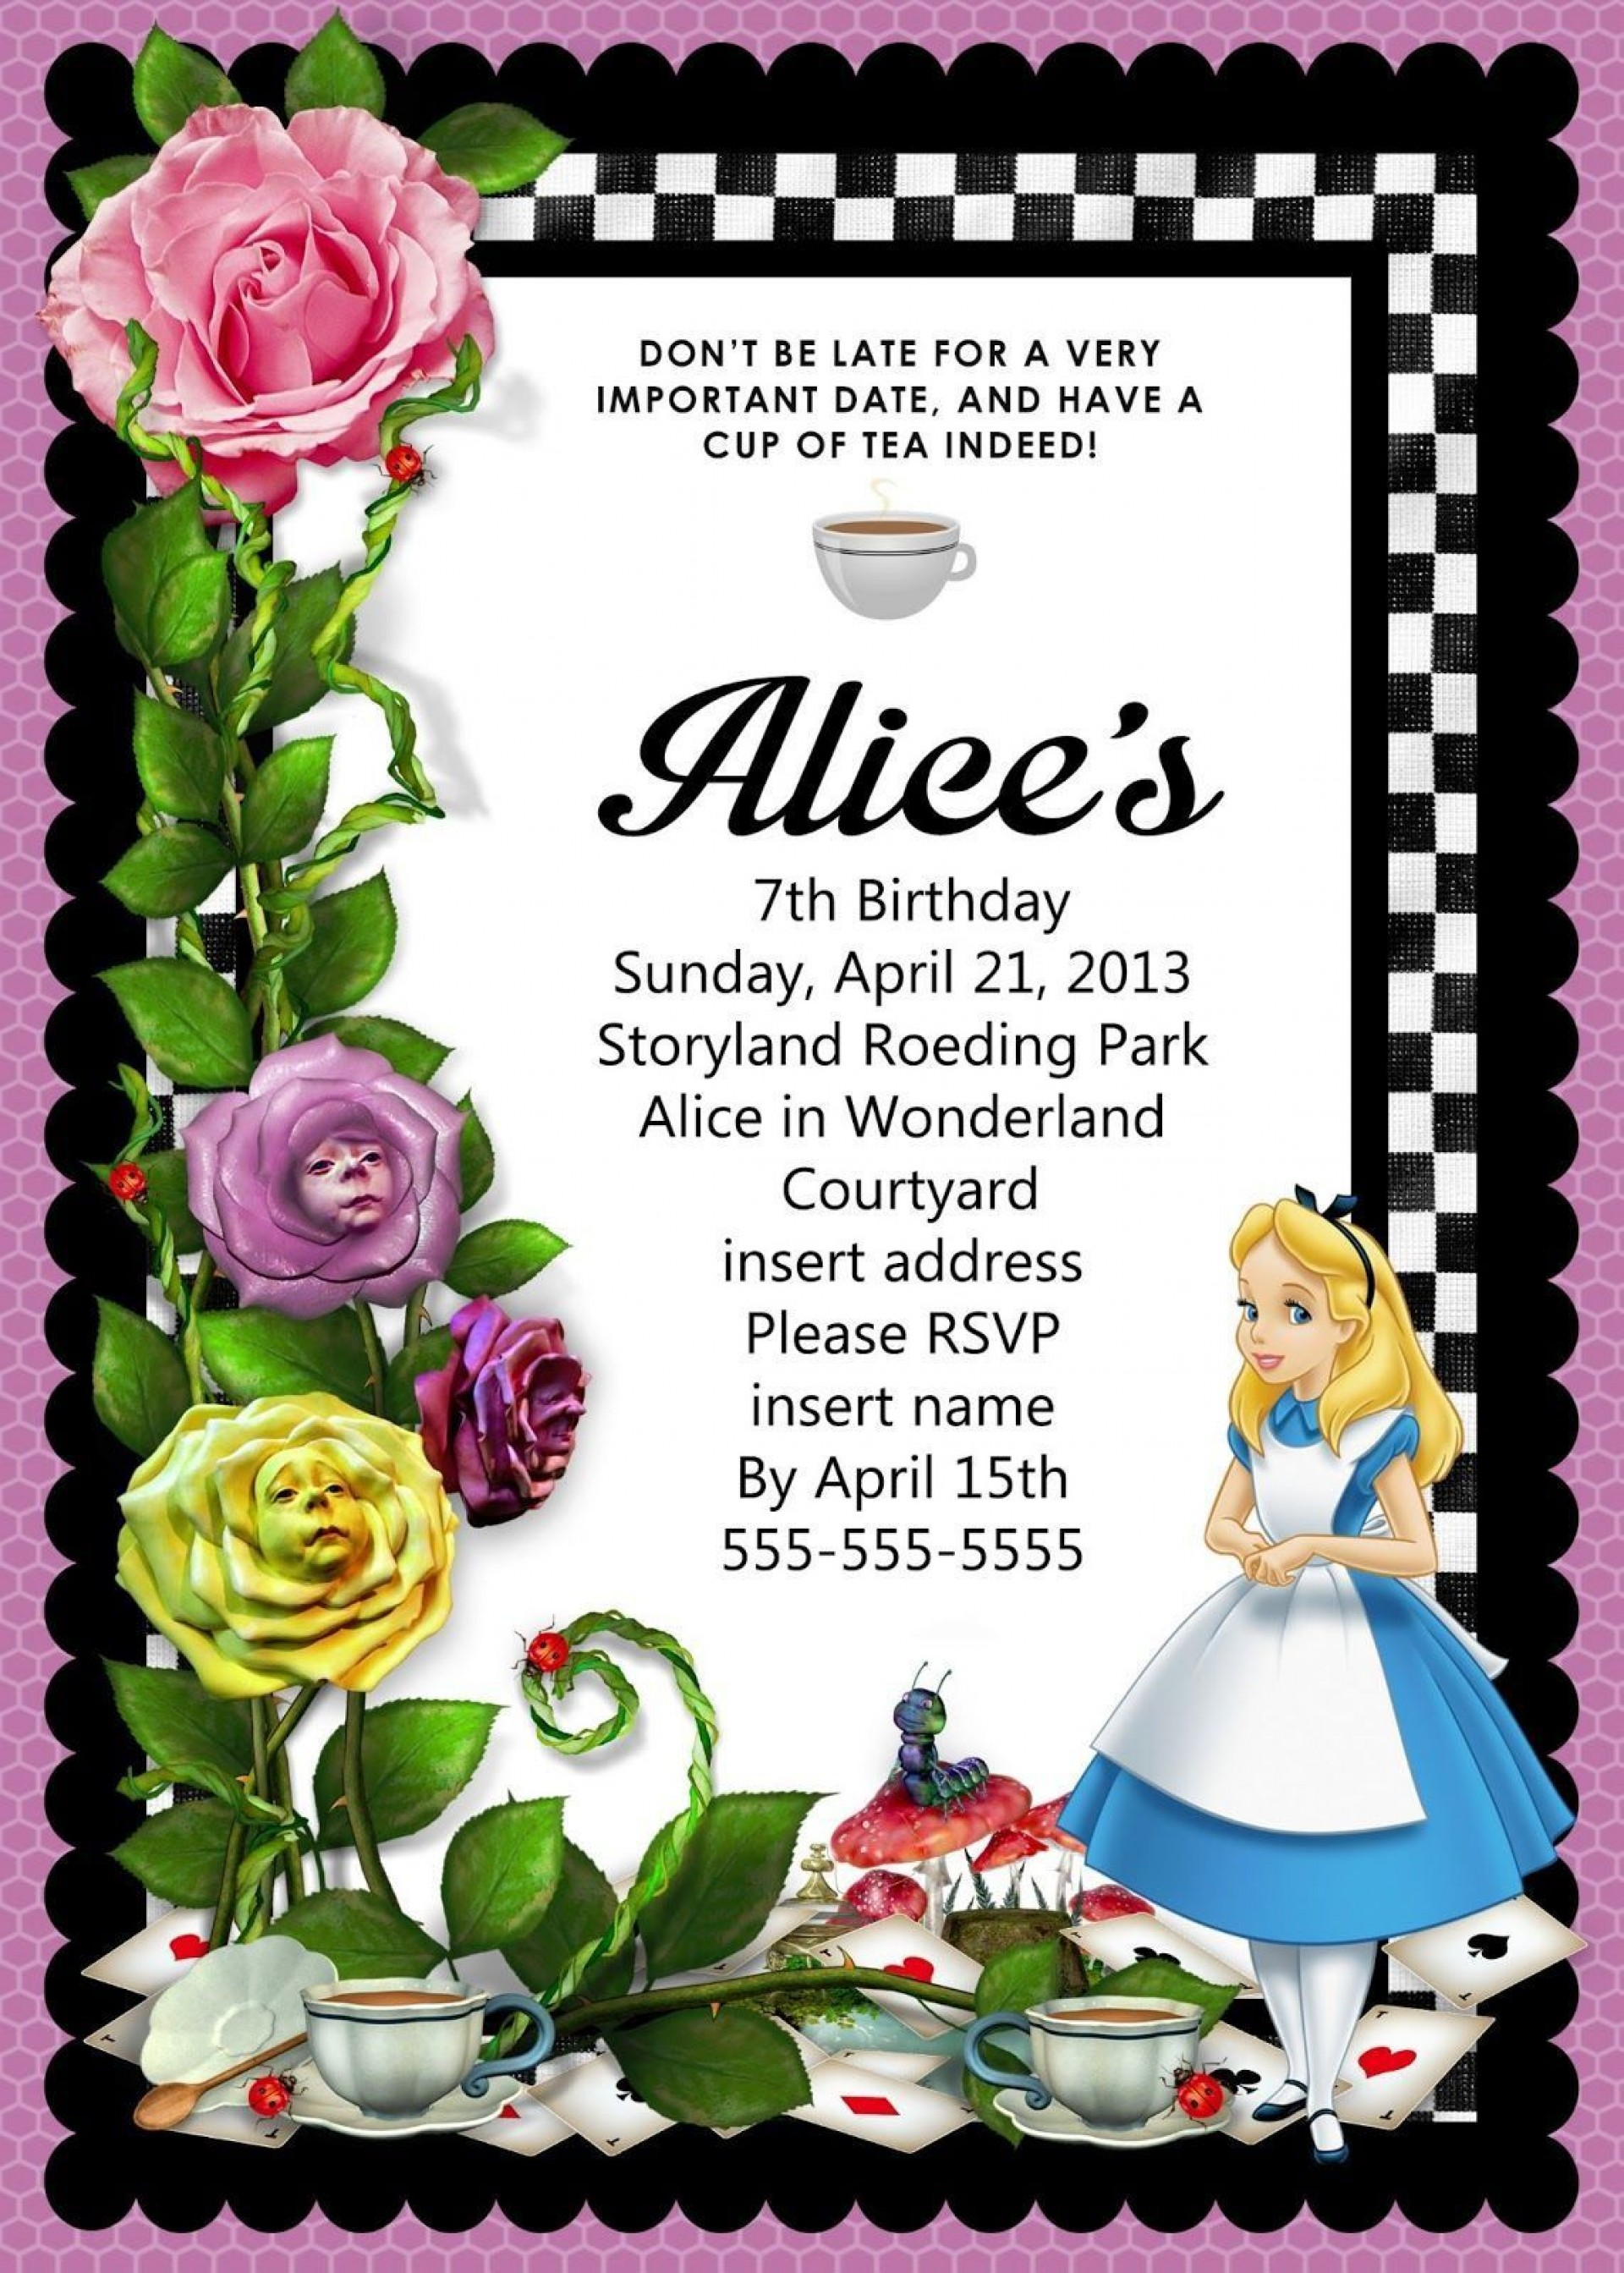 008 Awesome Alice In Wonderland Birthday Party Invitation Printable Free Highest Clarity 1920